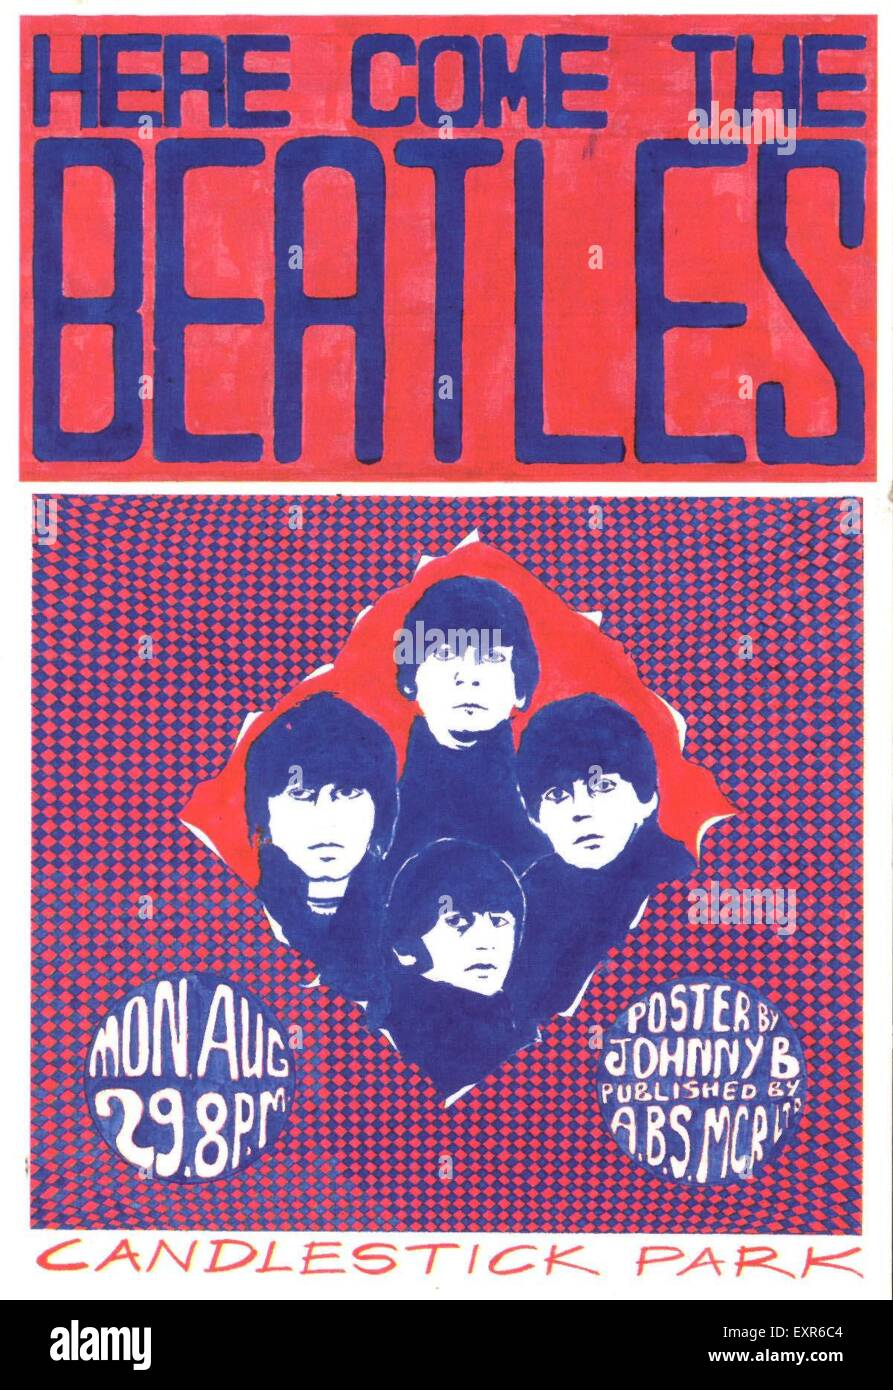 1960s UK Here Come The Beatles Poster - Stock Image